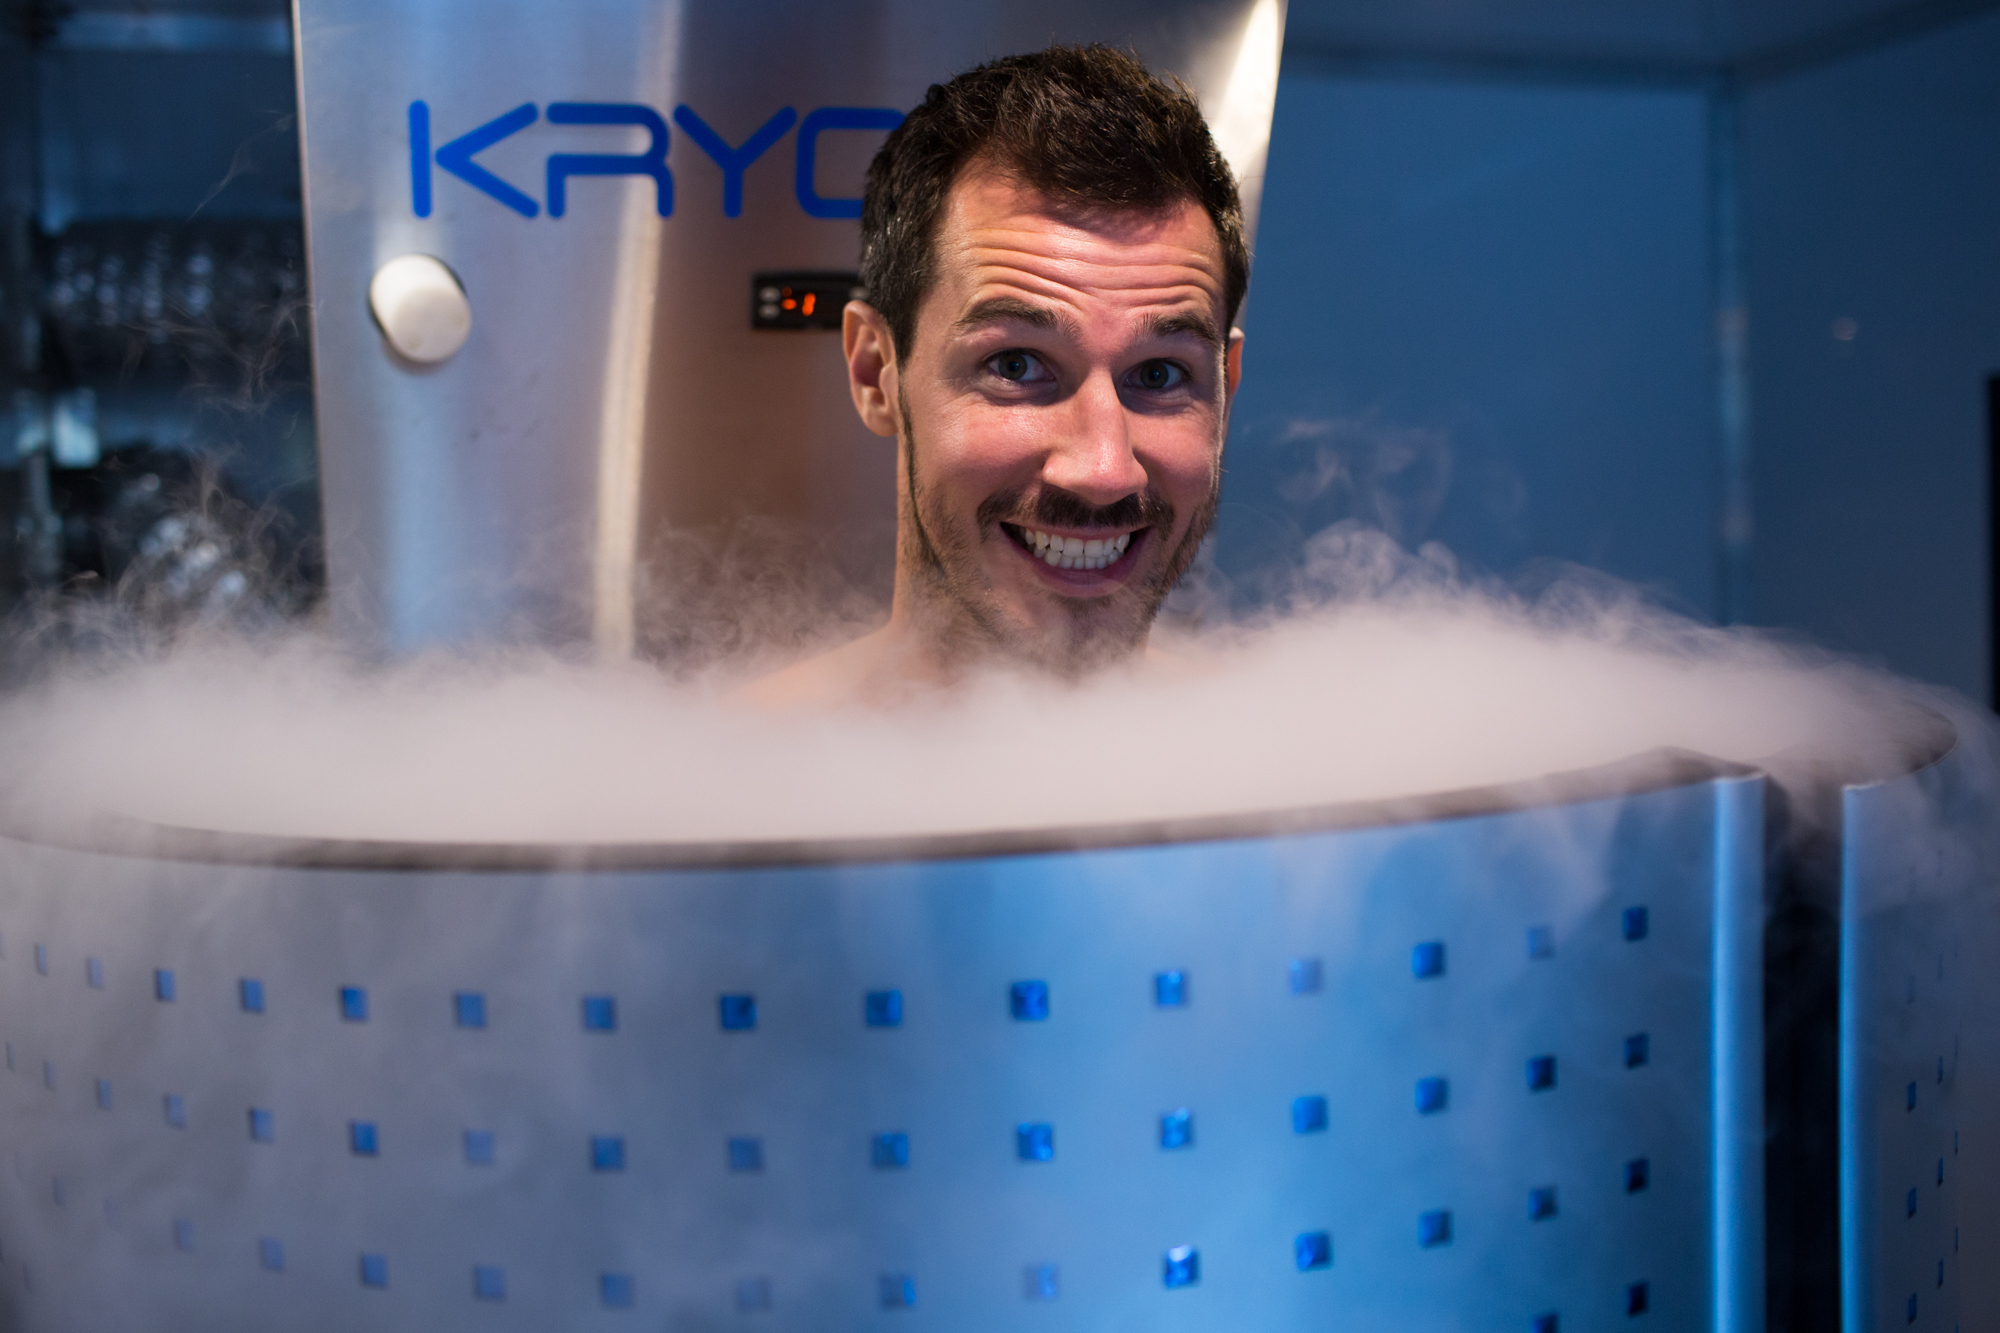 Ryan McGowan loving the cryotherapy chamber.